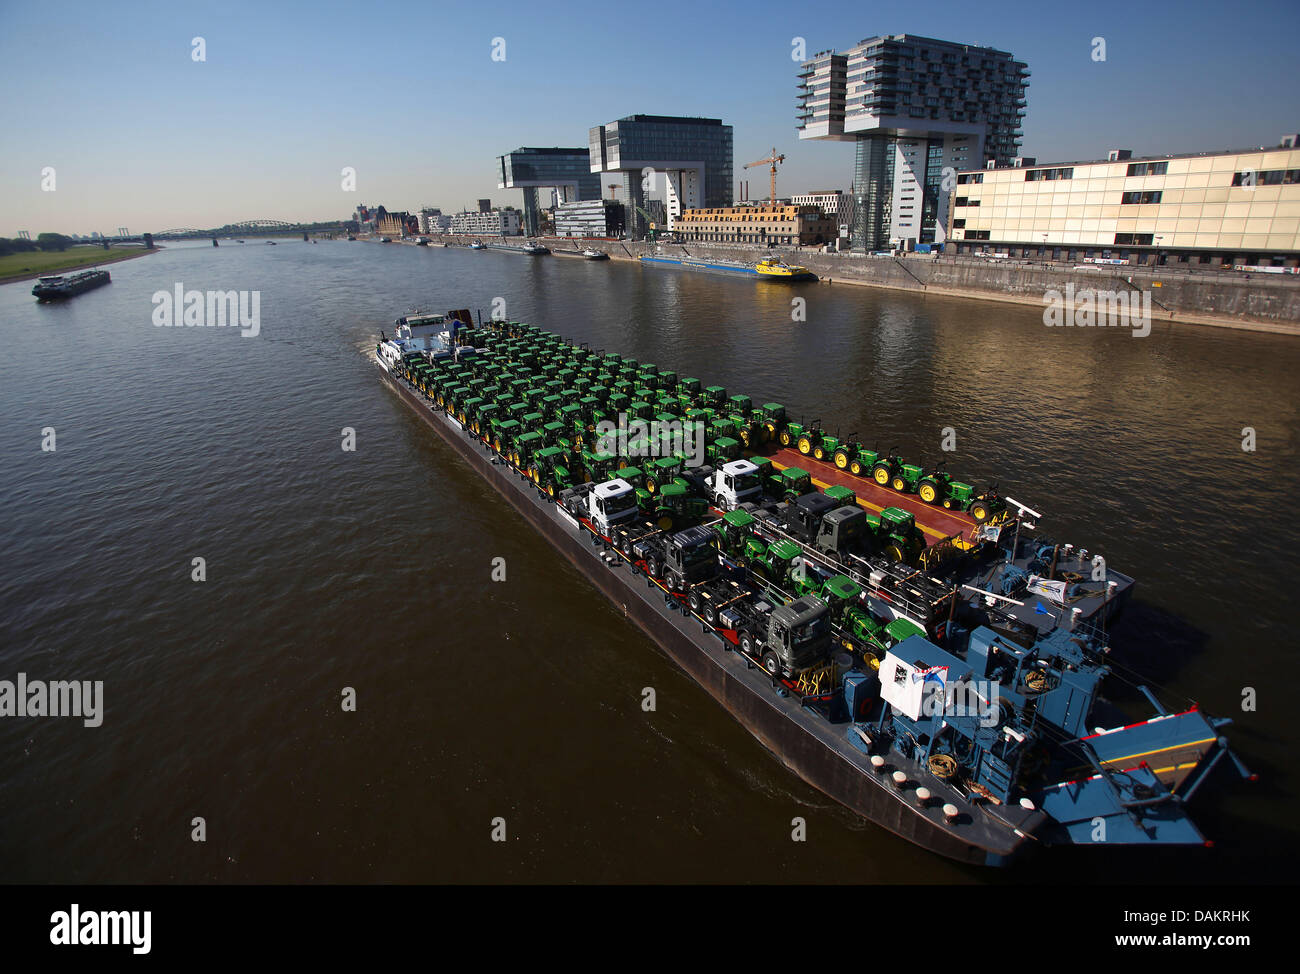 A ship transporting tractors is visible at the Rhin river in Cologne